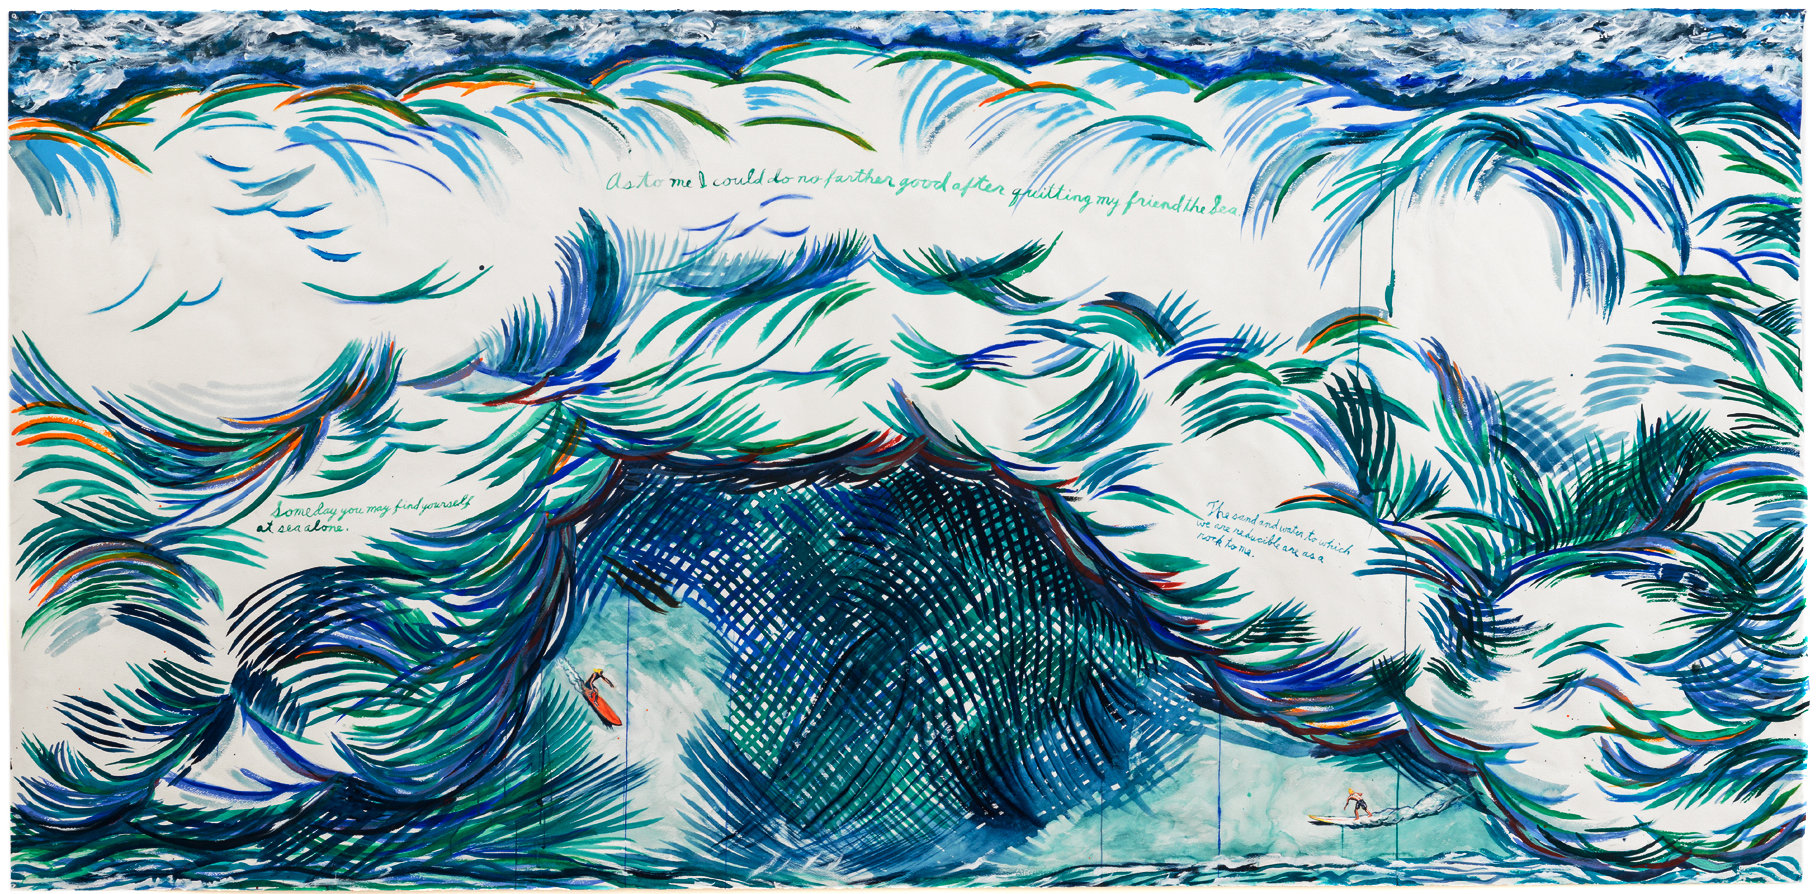 Raymond Pettibon: A Pen of All Work